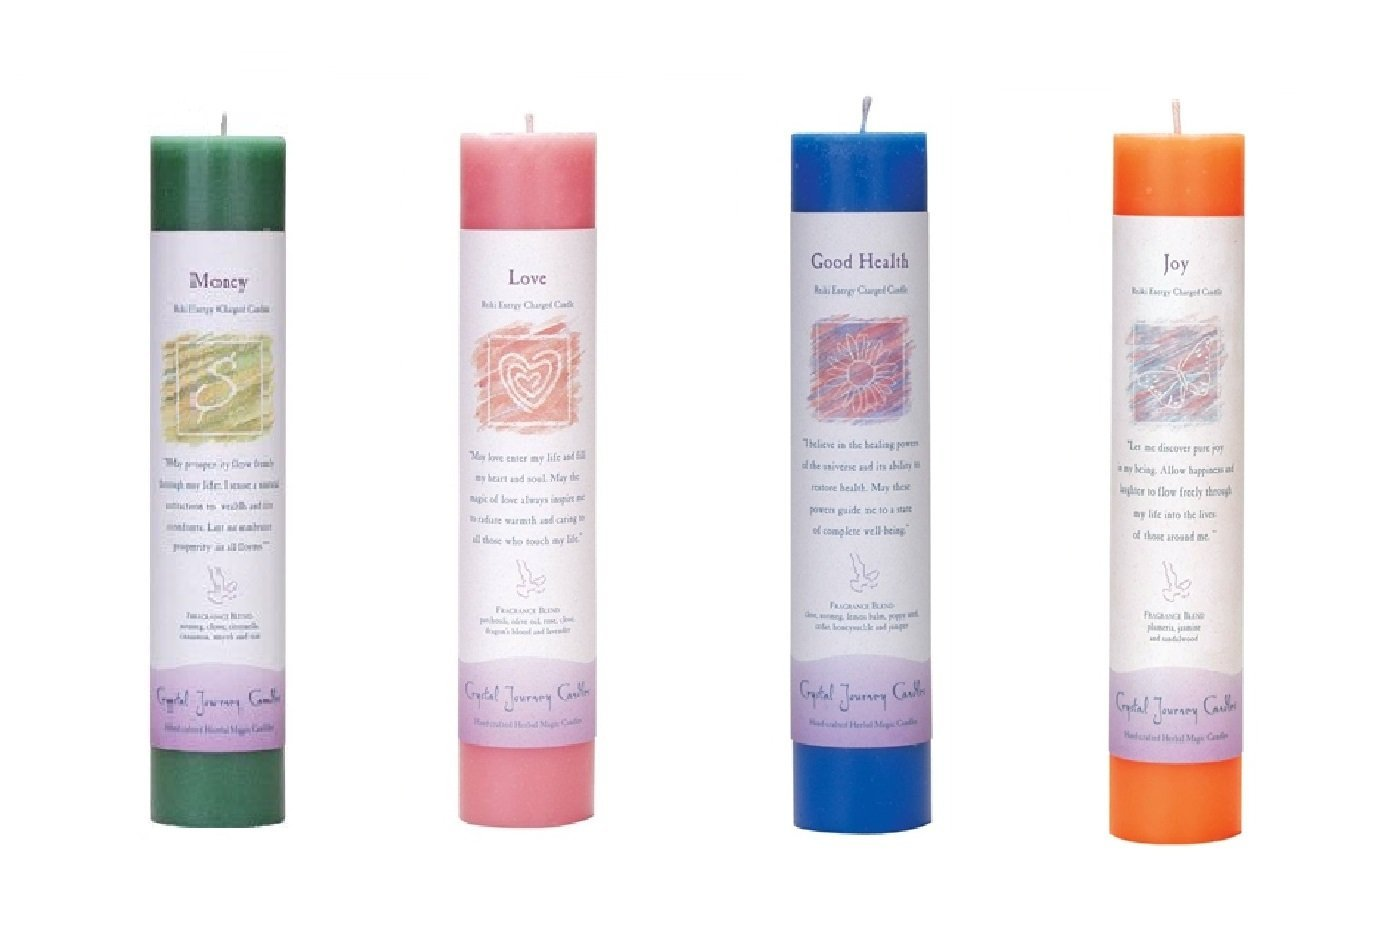 Crystal Journey Reiki Charged Herbal Magic Pillar Candle with Inspirational Labels - Bundle of 4 (Money, Love, Good Health, Joy) Each 7''x1.5'' handcrafted with lead-free materials